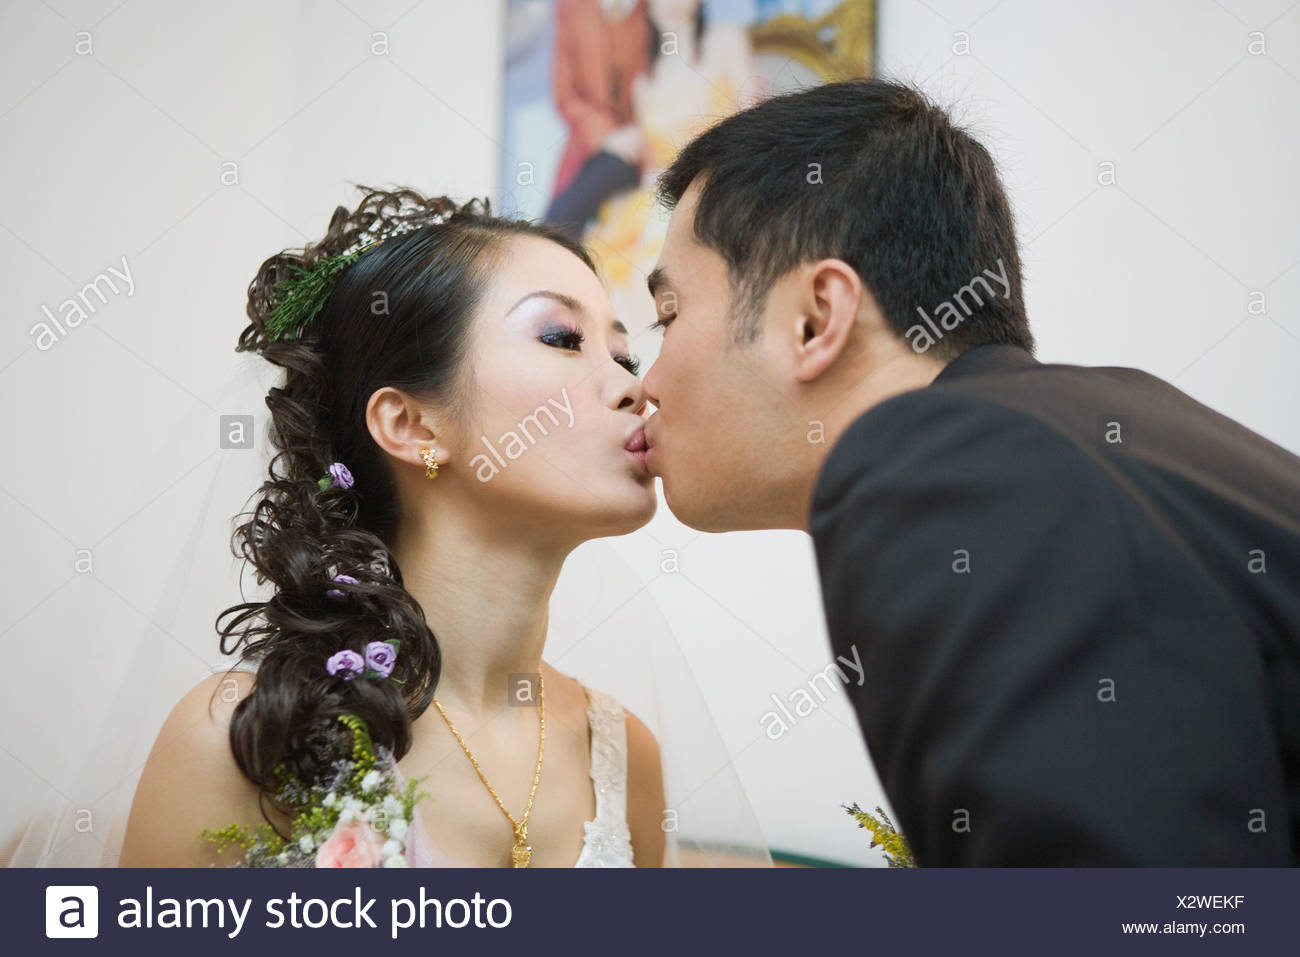 women kissing each other